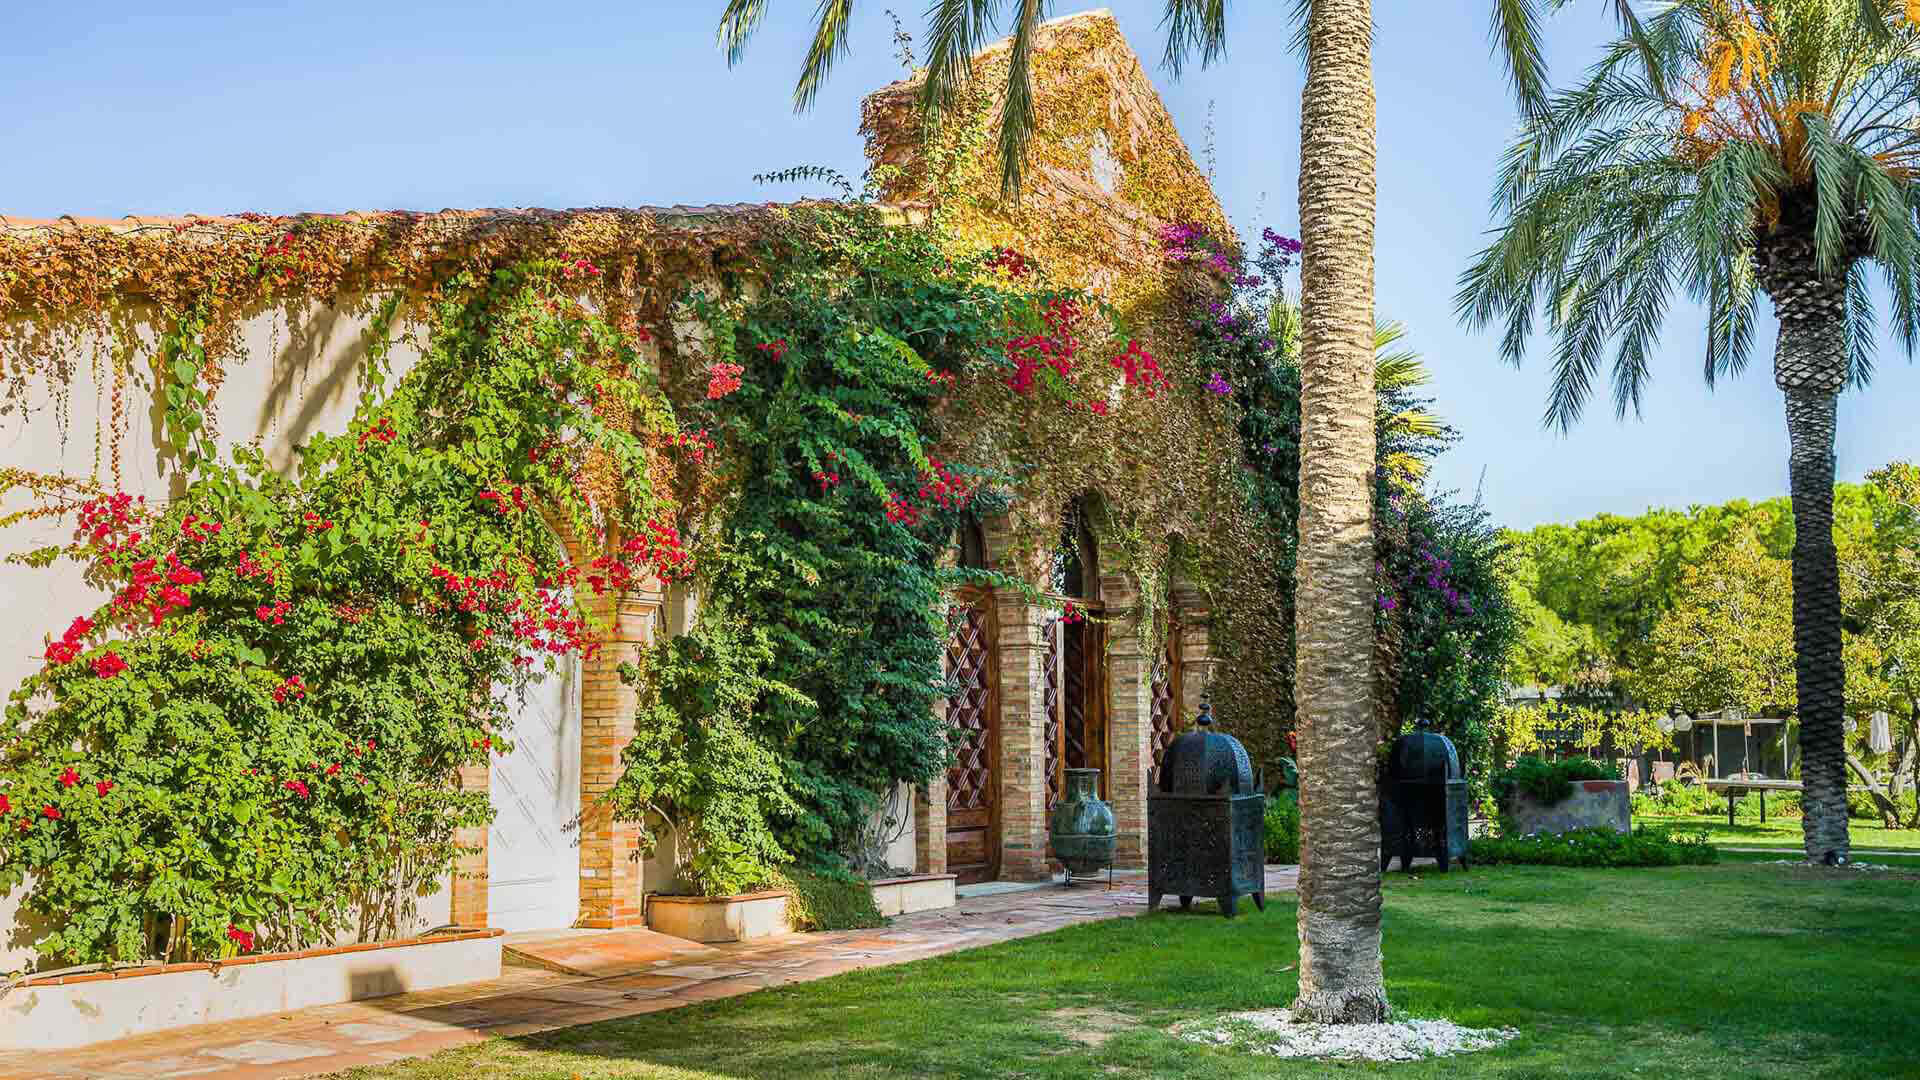 Large property outside Barcelona building overgrown with flowers